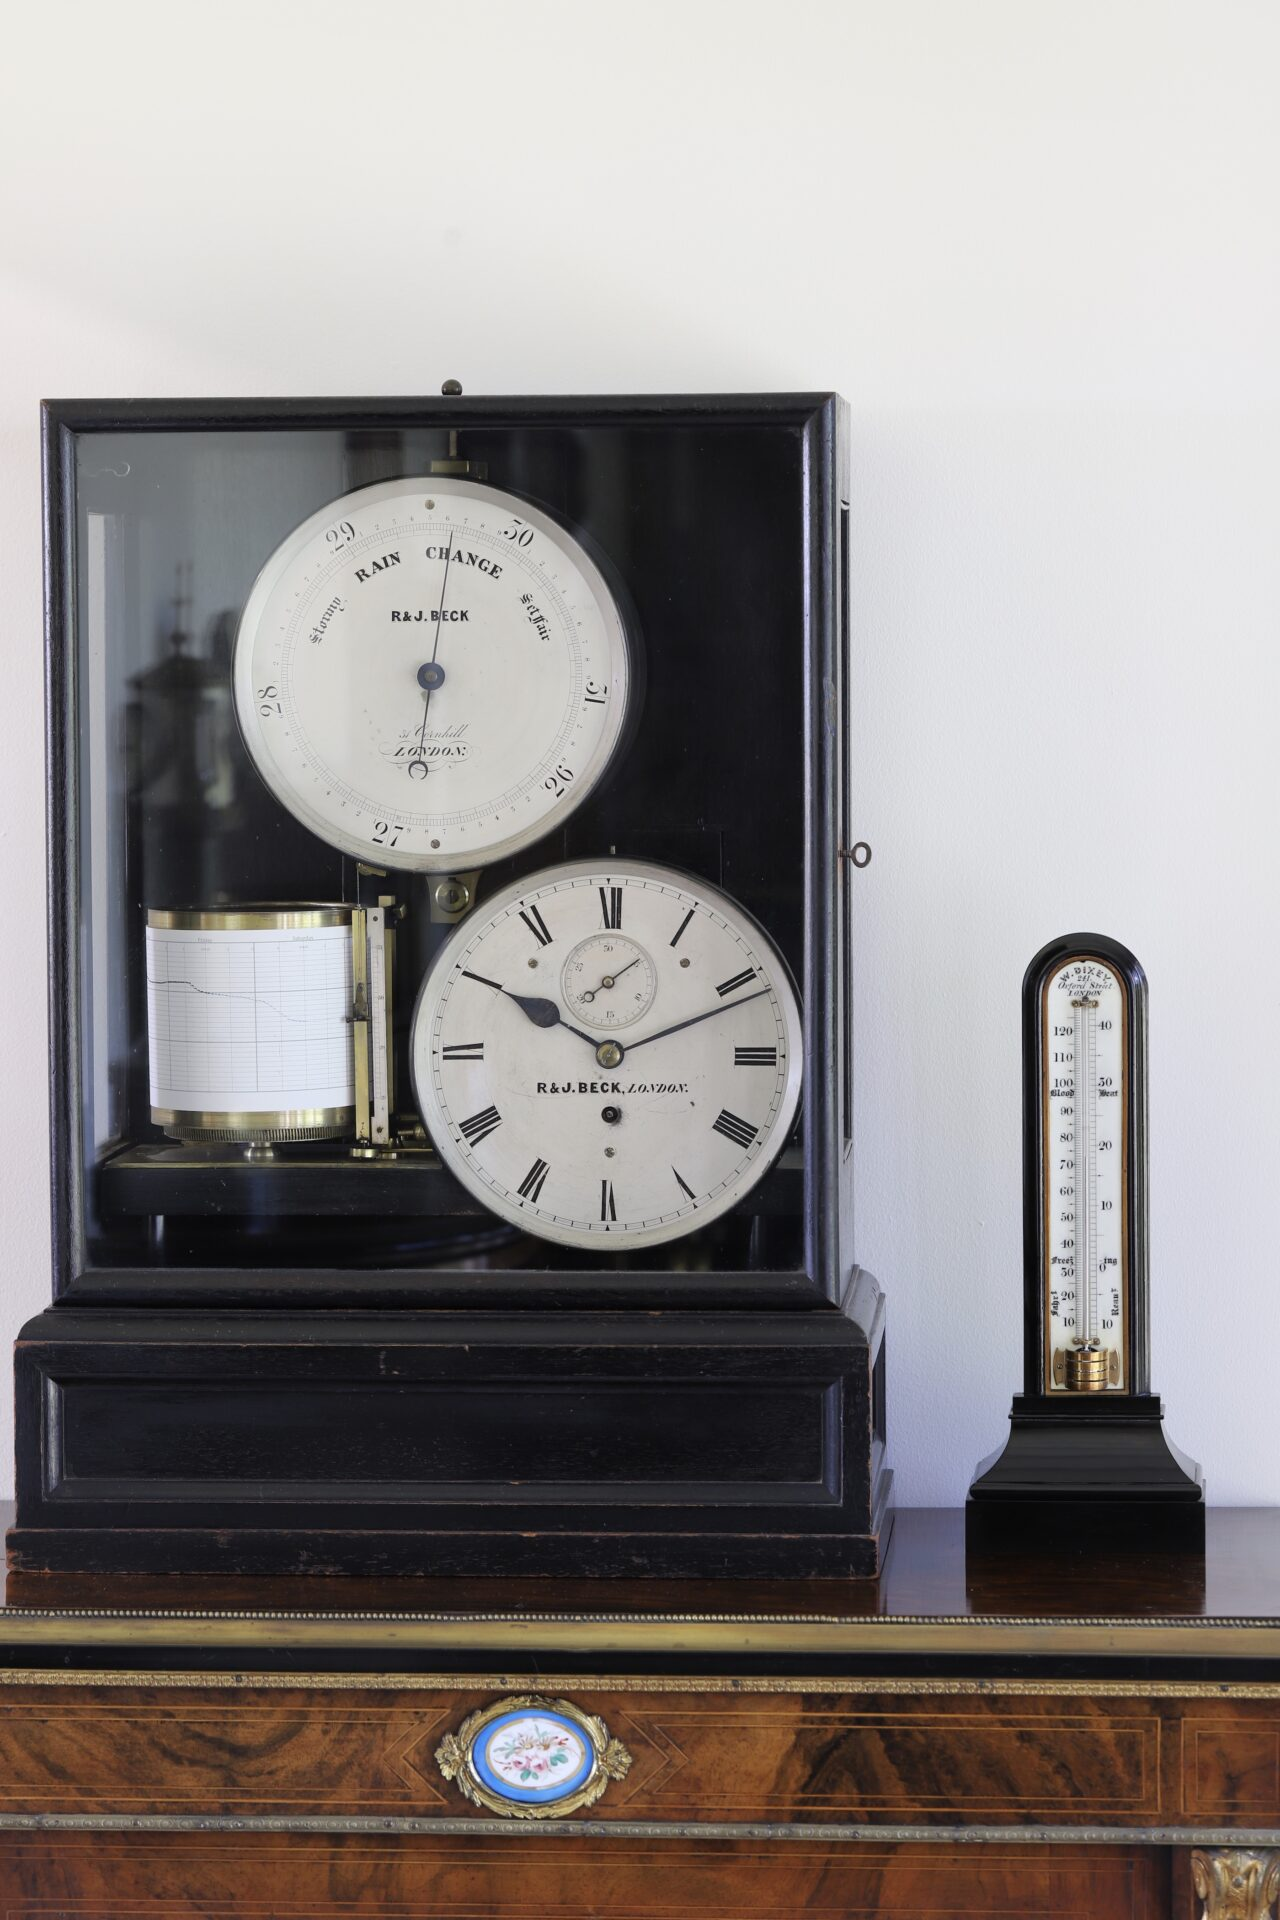 Front view of Victorian Thermometer in Ebony Case by William Dixey c1870 next to R&J Beck Weather Station